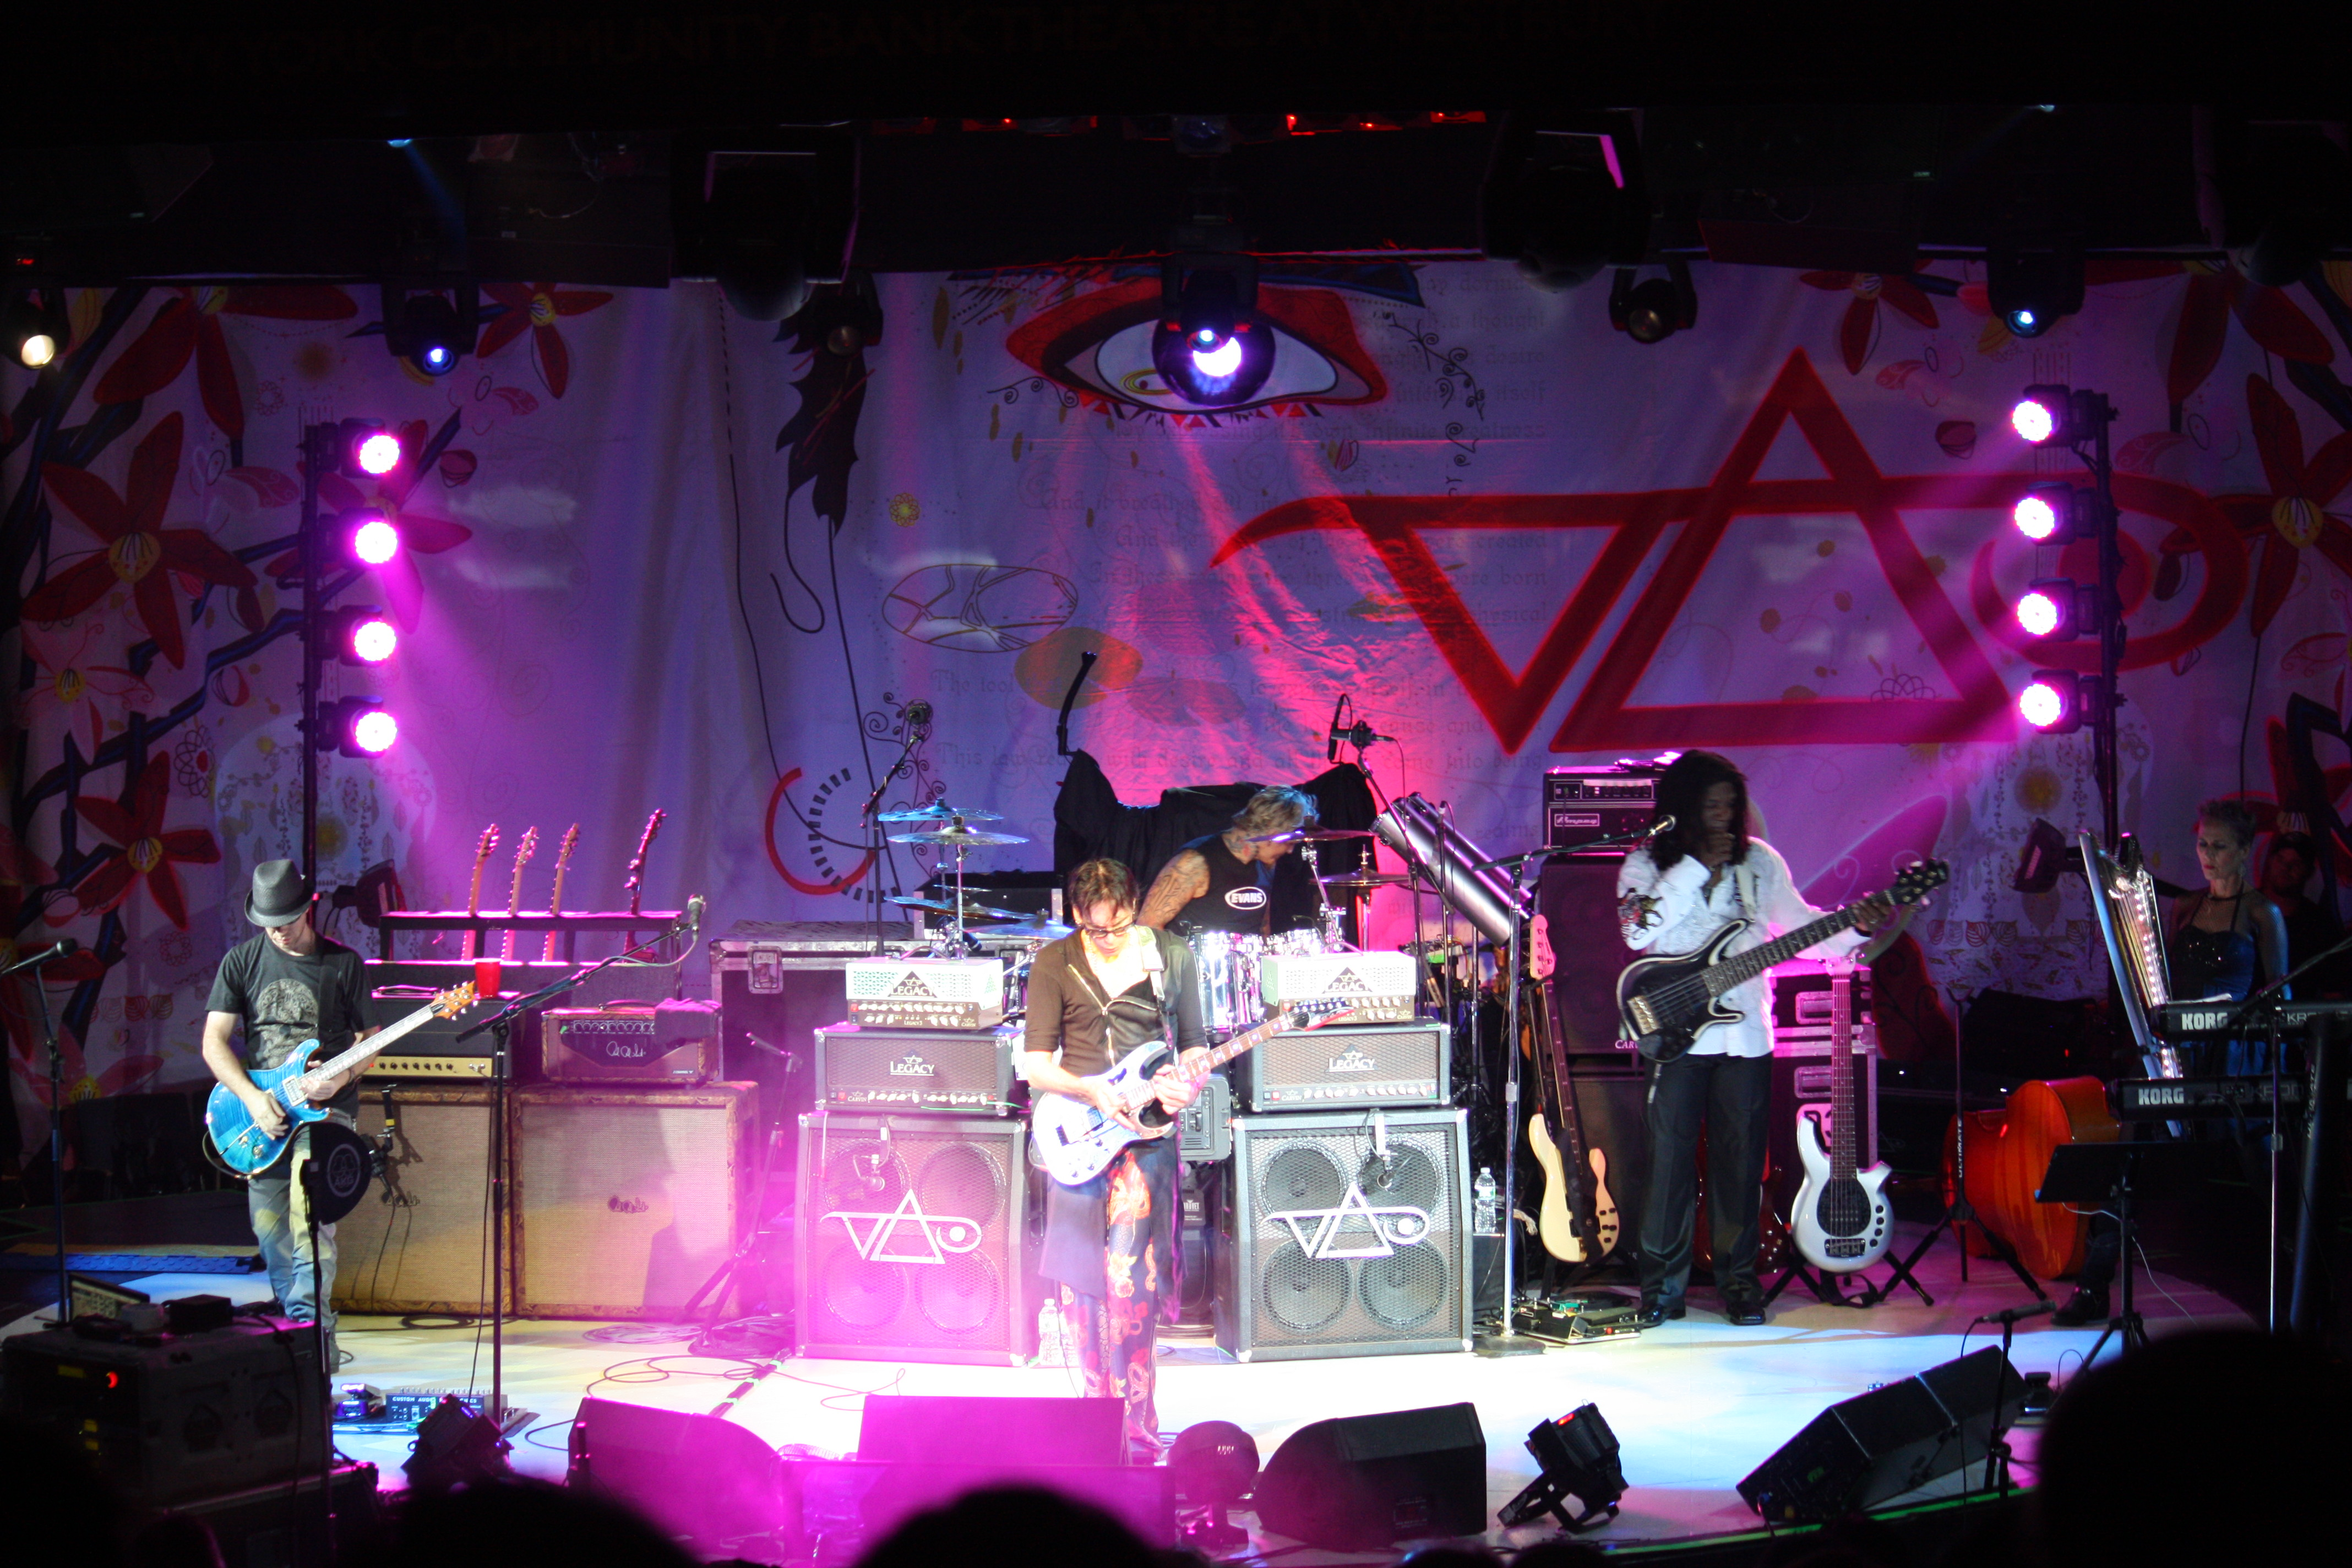 Steve vai live show review manta ray pictures vai8 fandeluxe Gallery